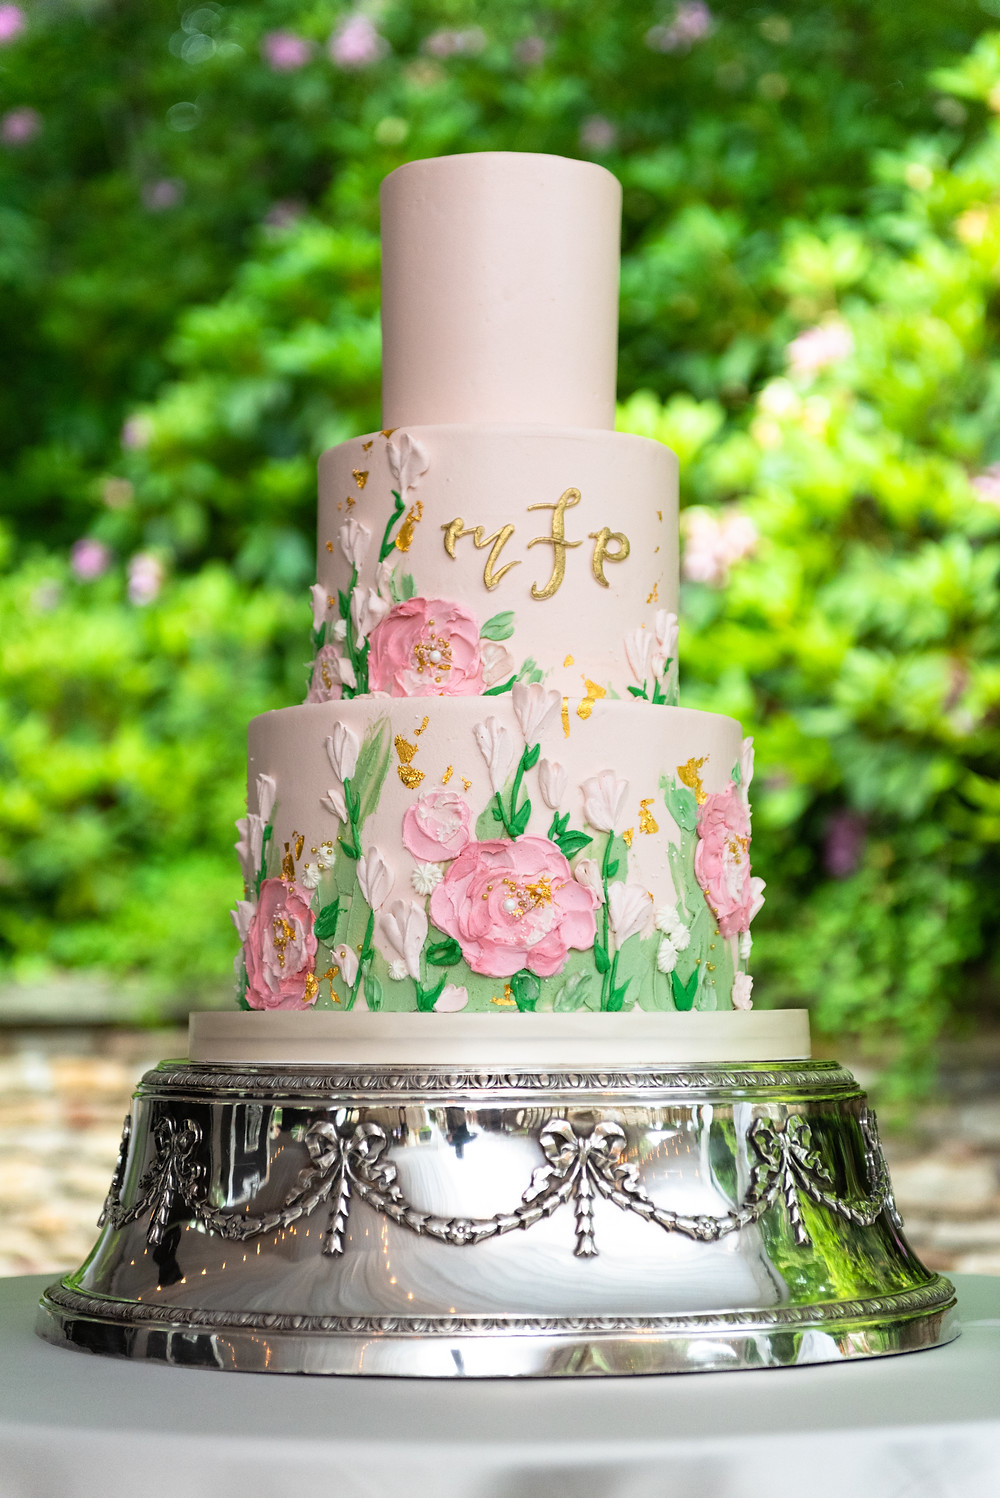 Three tiered white wedding cake with initials and floral details by Tasty Bakery in PA